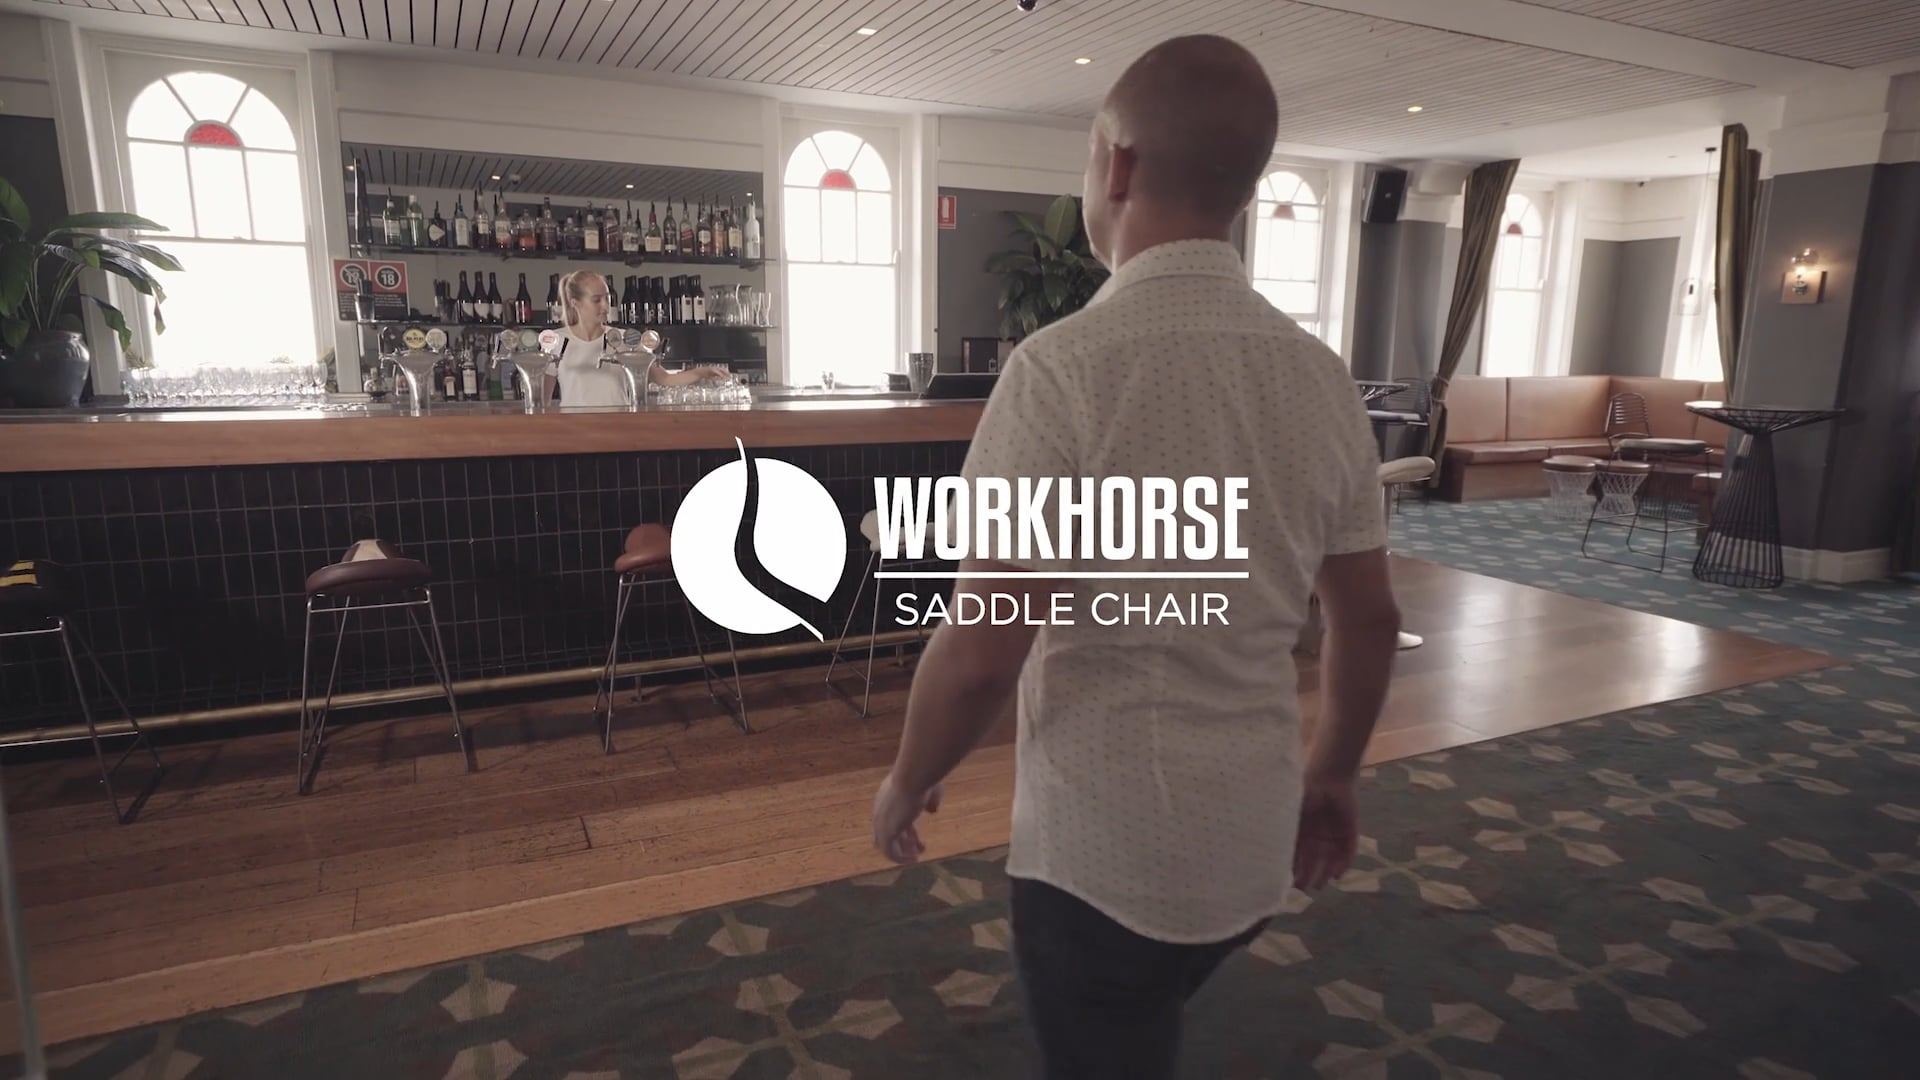 Workhorse Saddle Chair